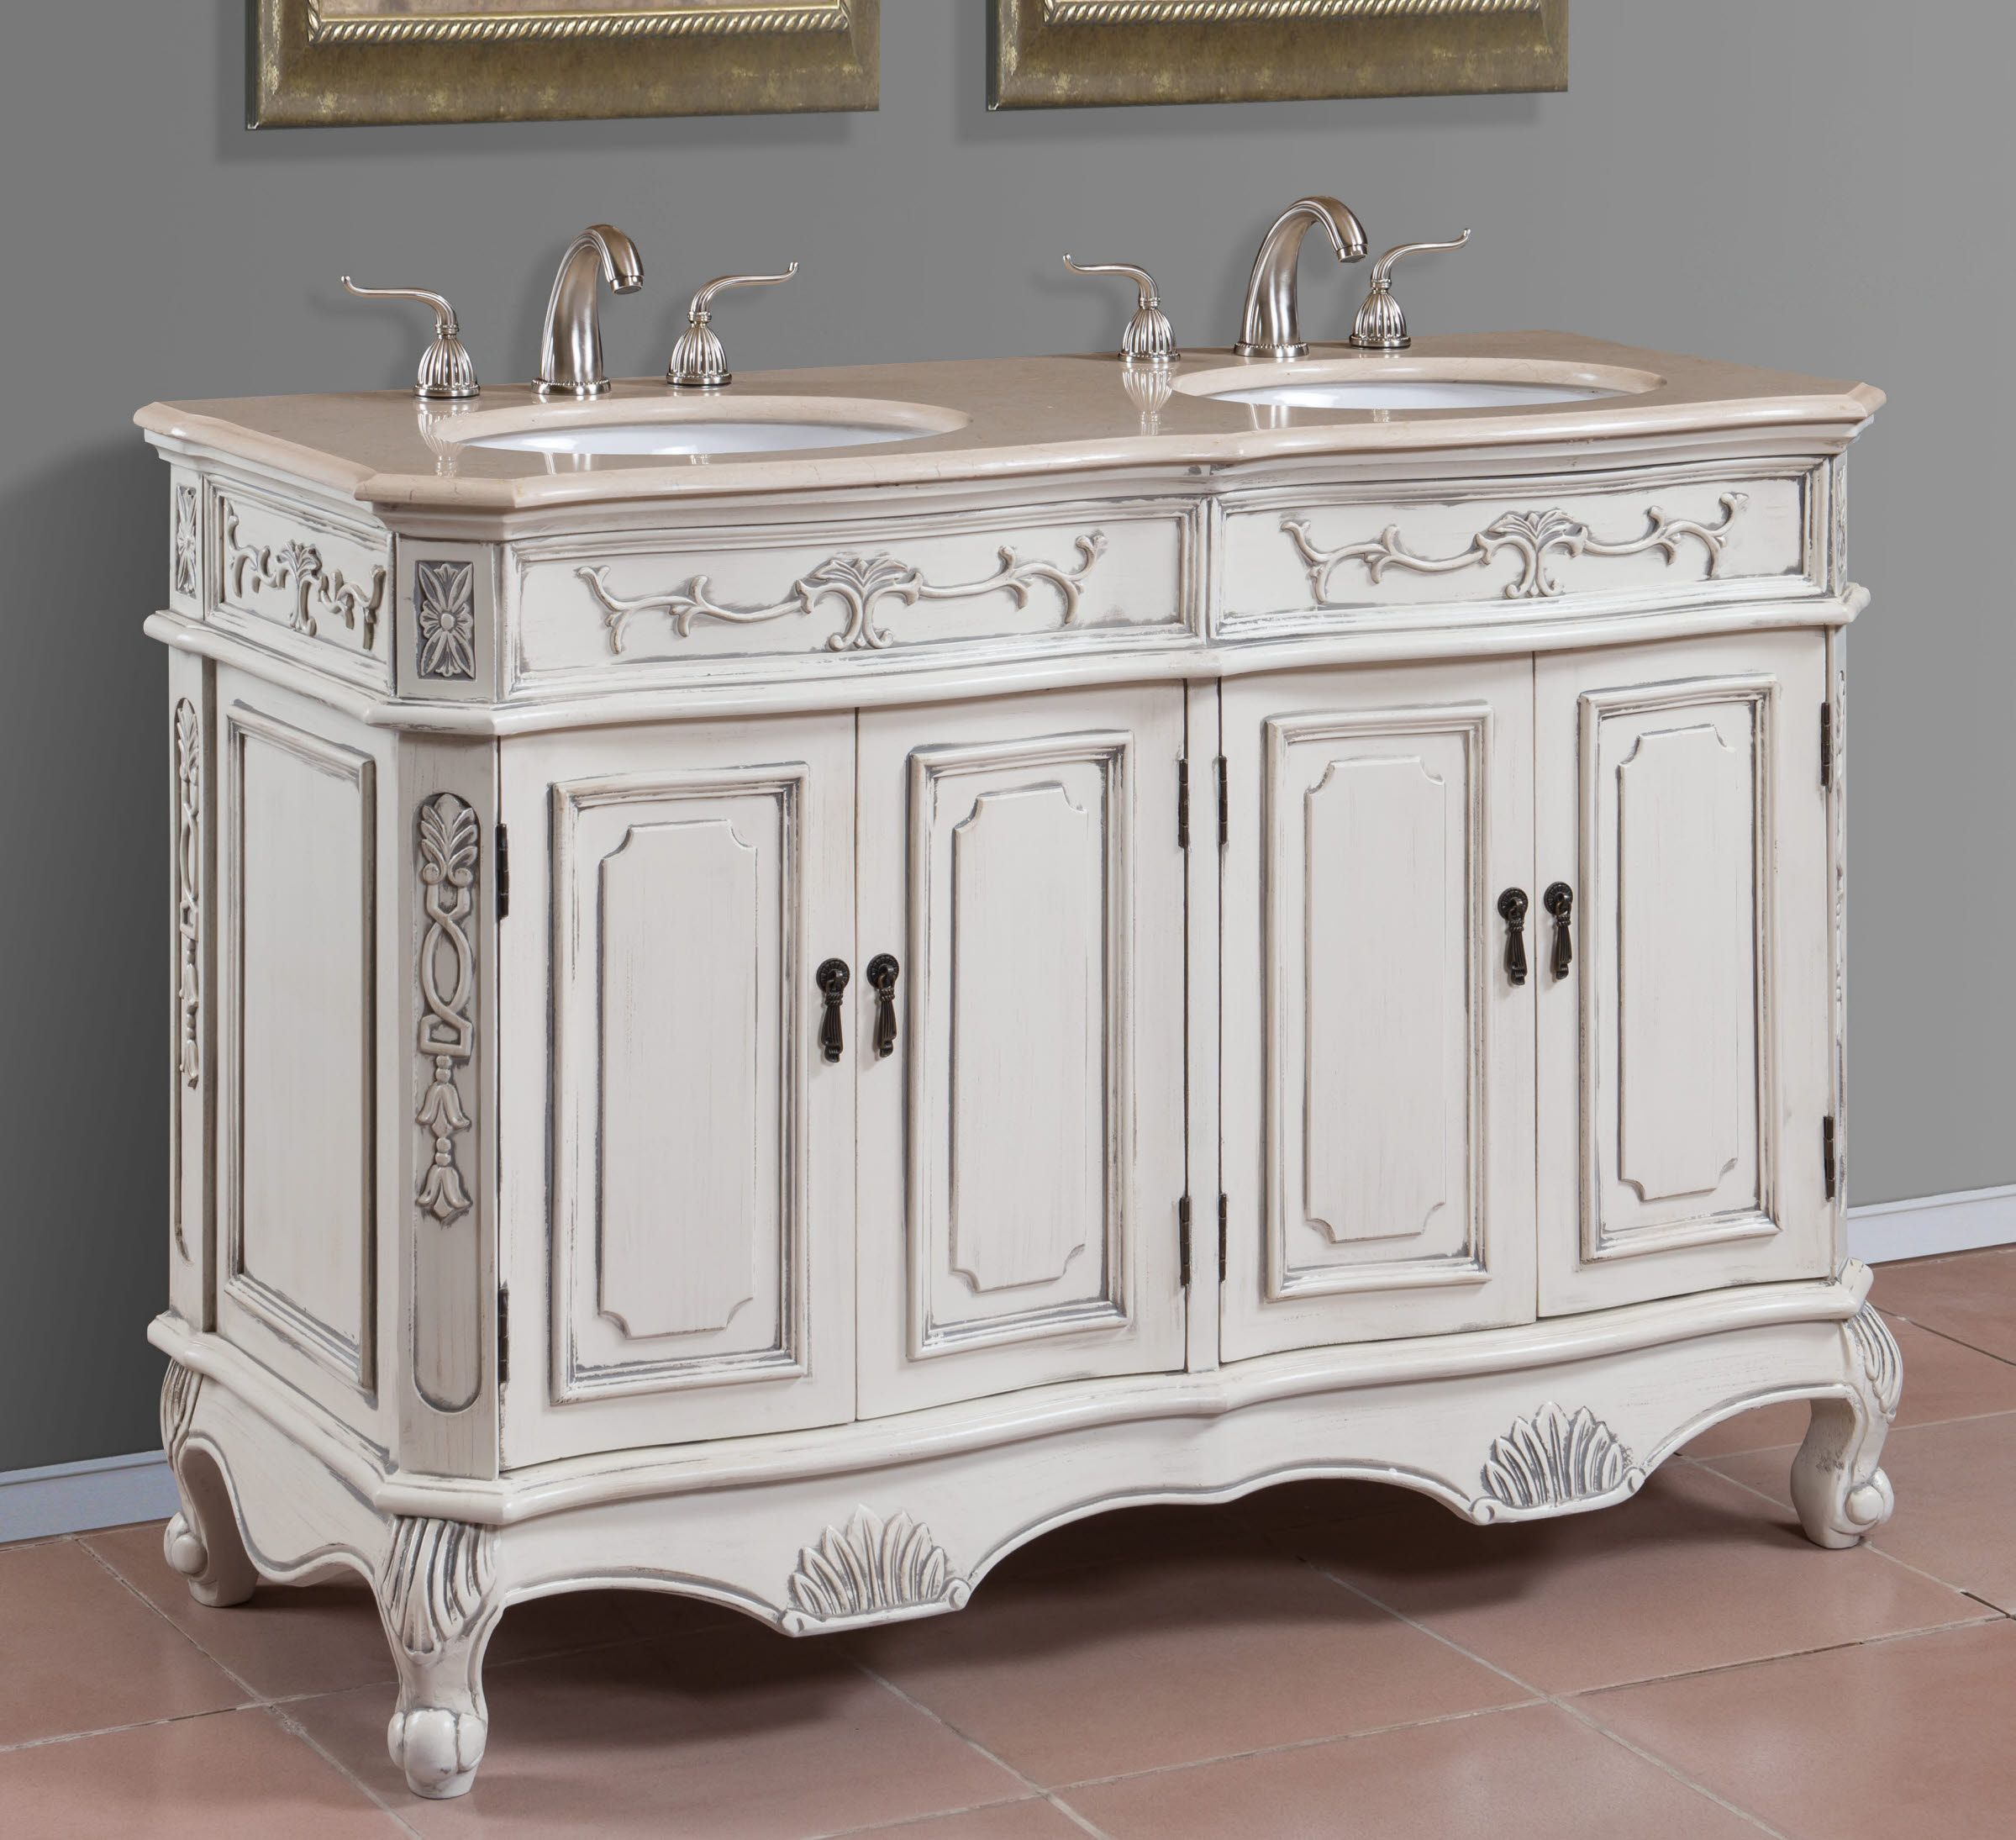 50 Inch Double Sink Bath Vanity With Cream Marble Top 1153